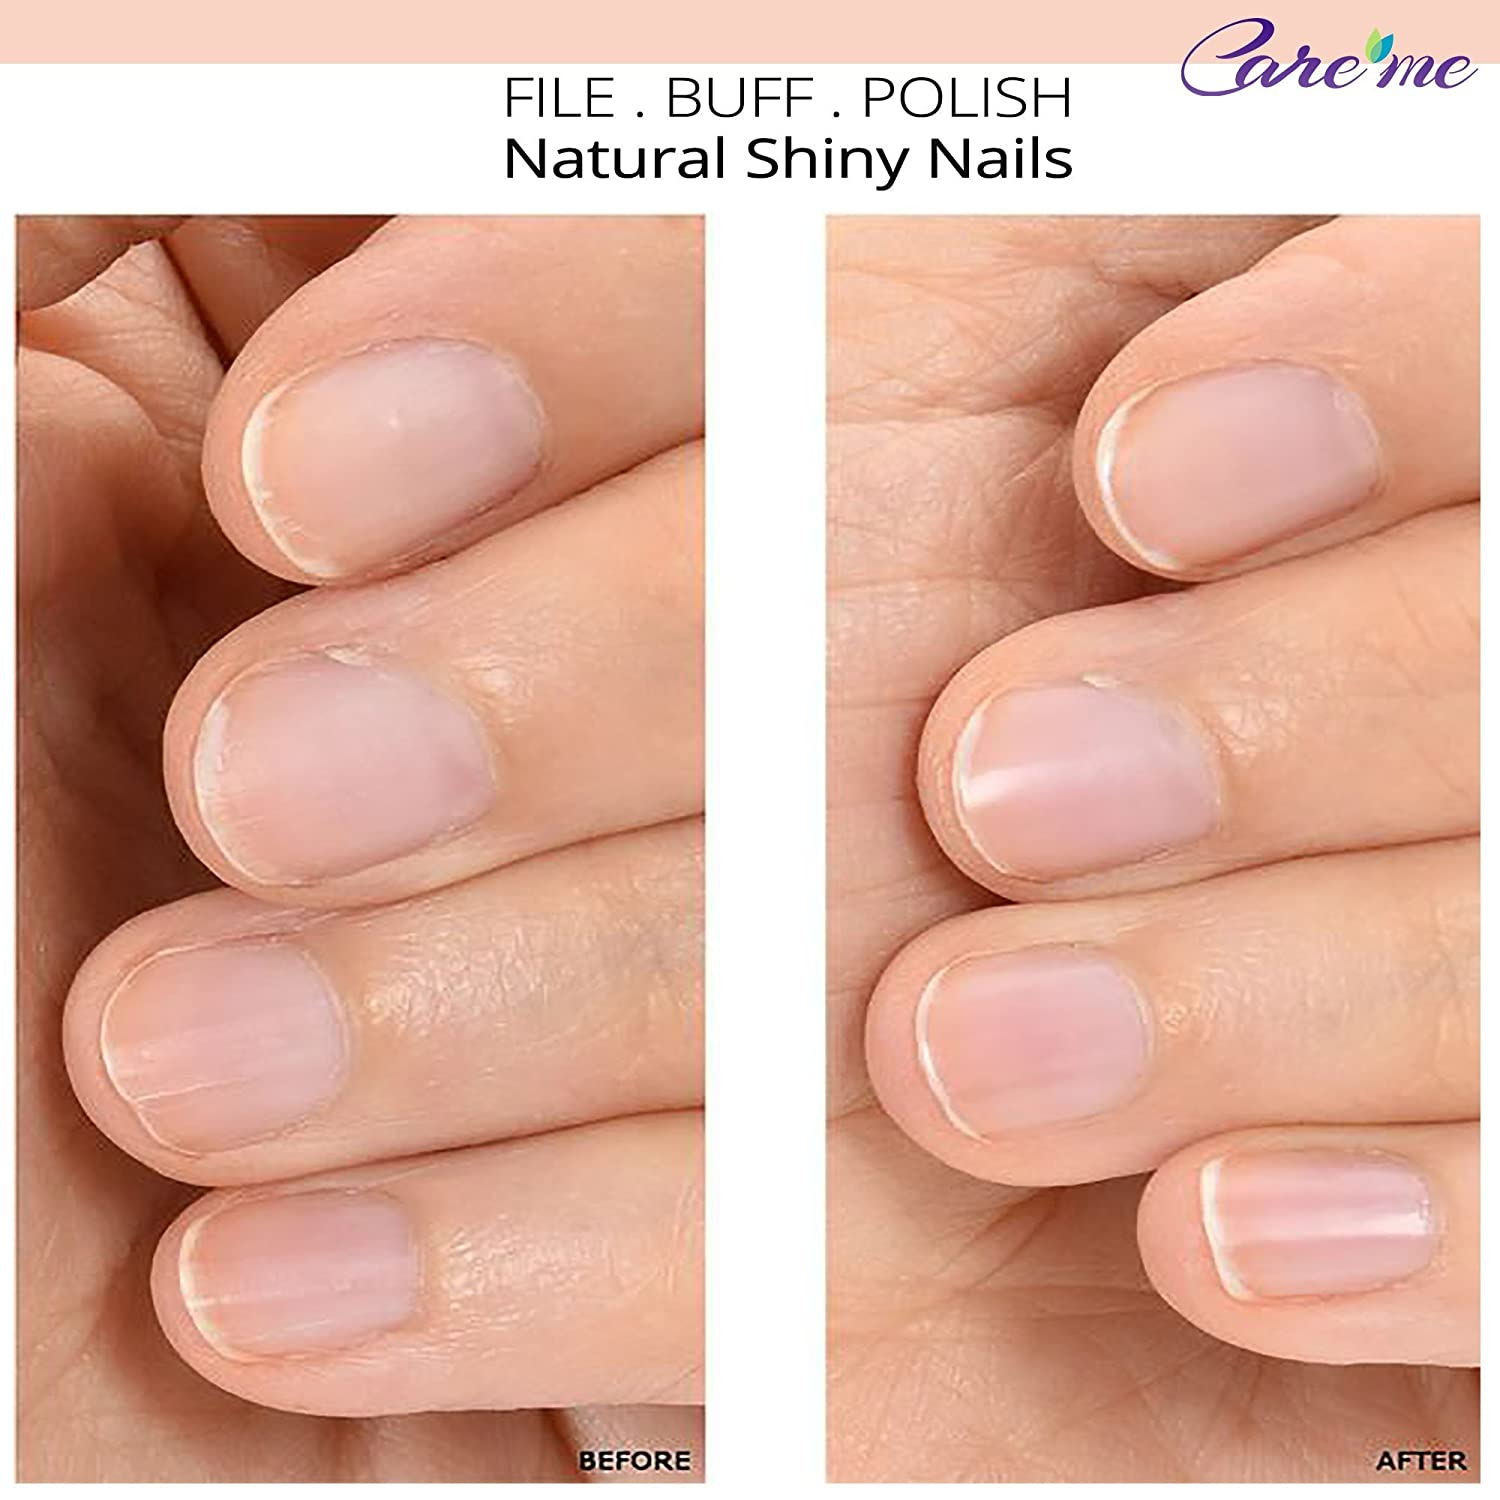 What is nail buffs and how to use them